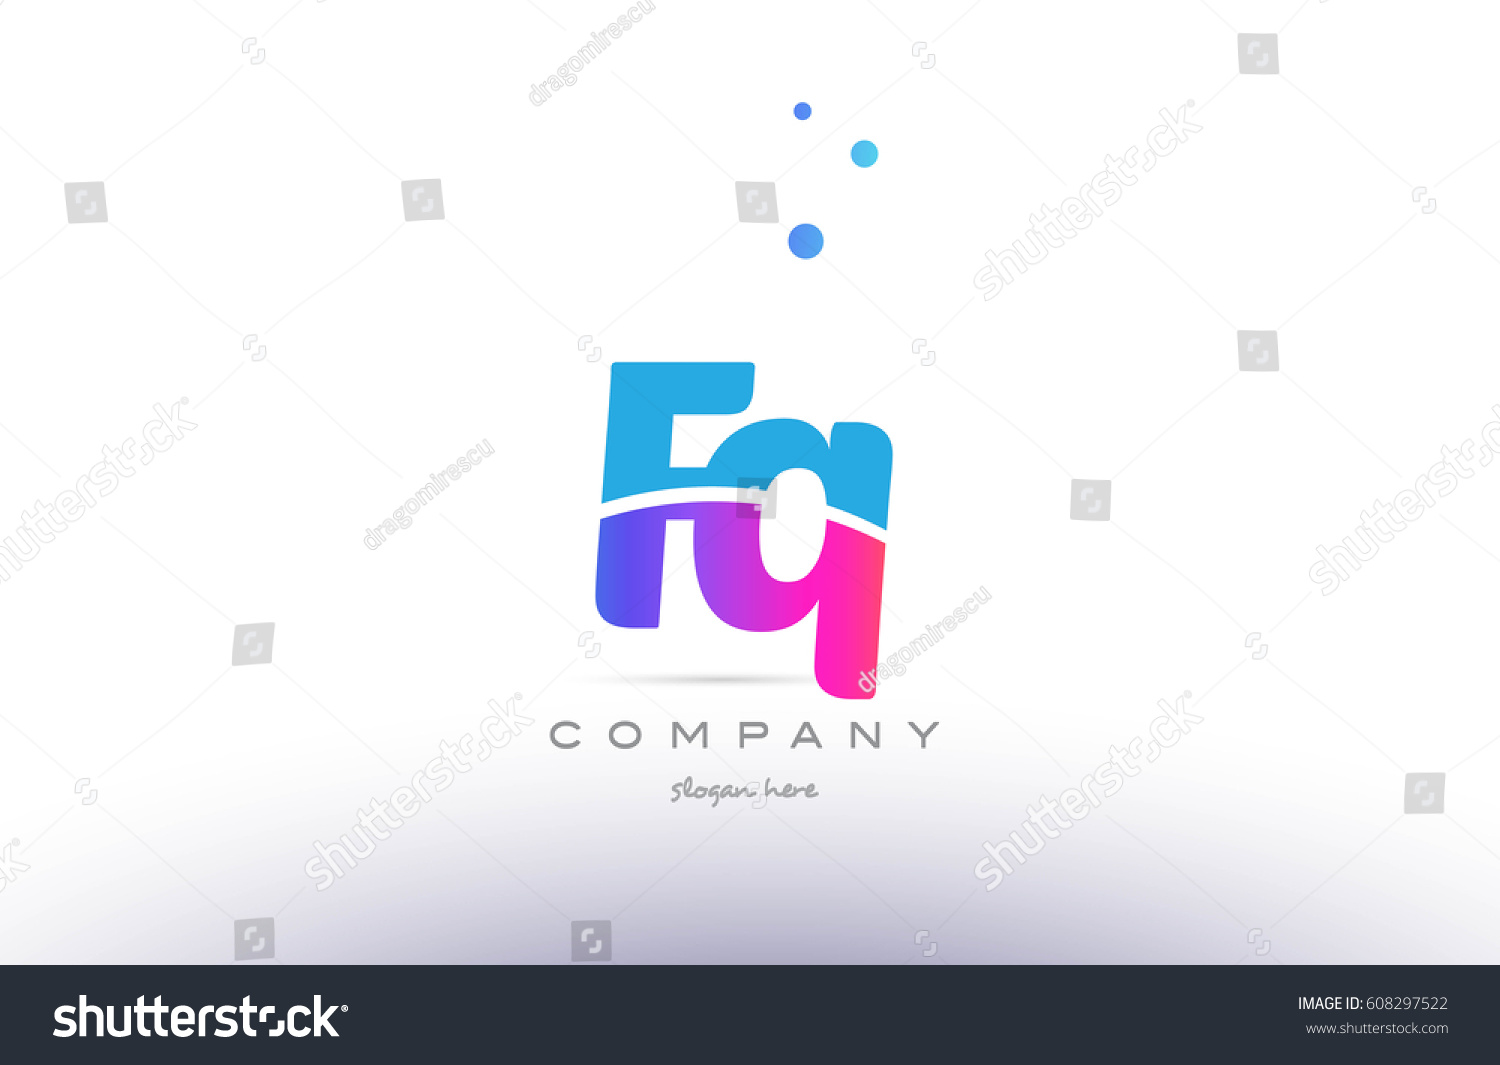 fq f q pink purple blue white uppercase lowercase modern creative alphabet  gradient company letter logo design